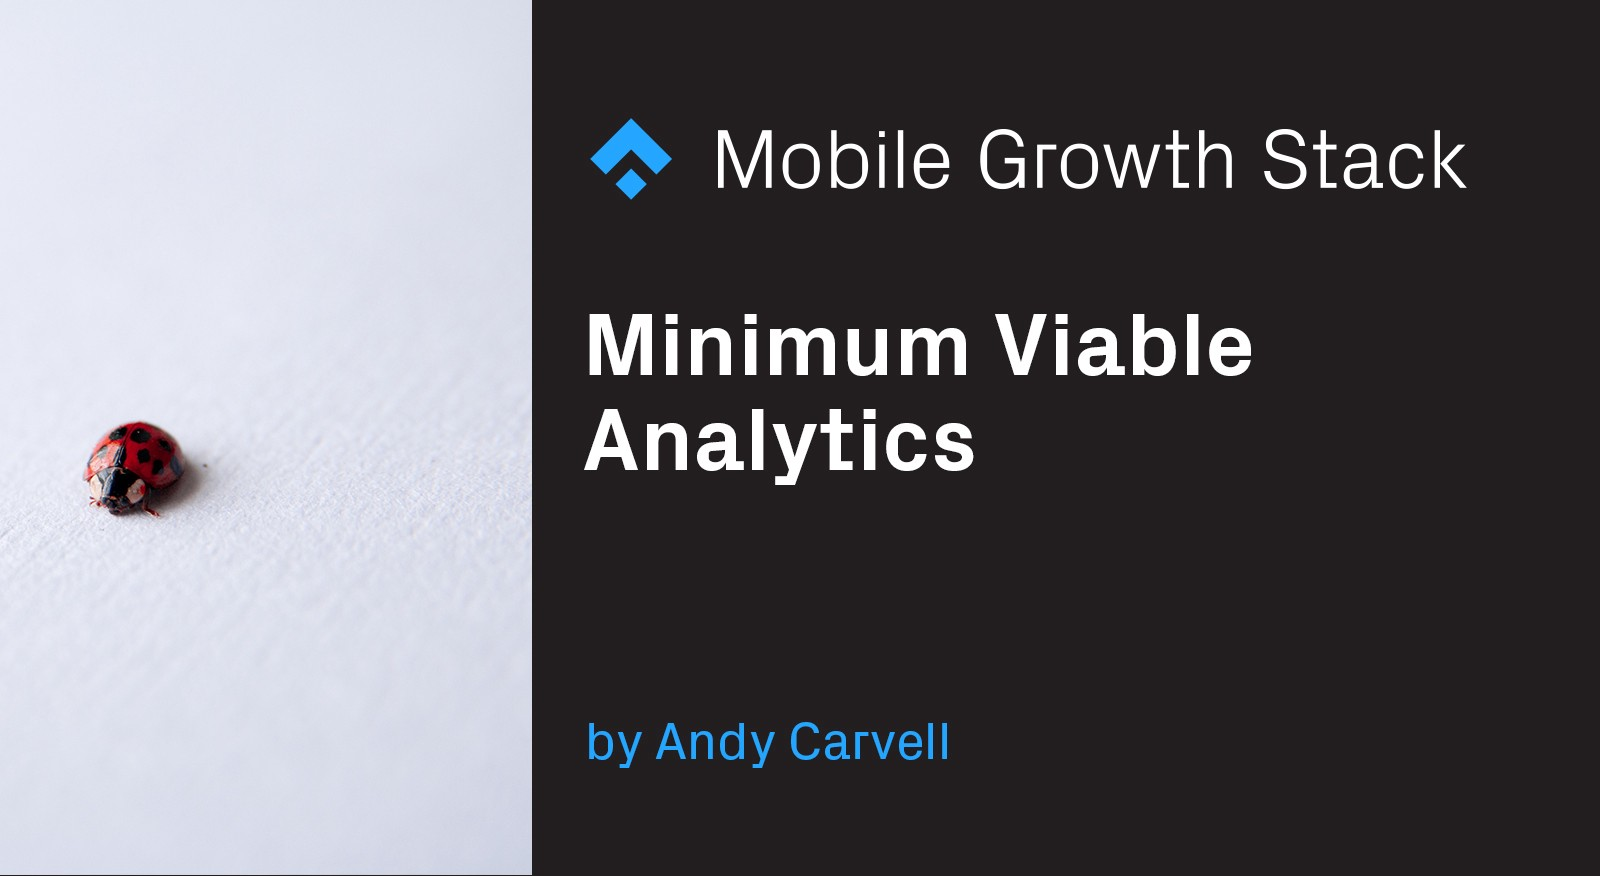 Minimum Viable Analytics - The Mobile Growth Stack